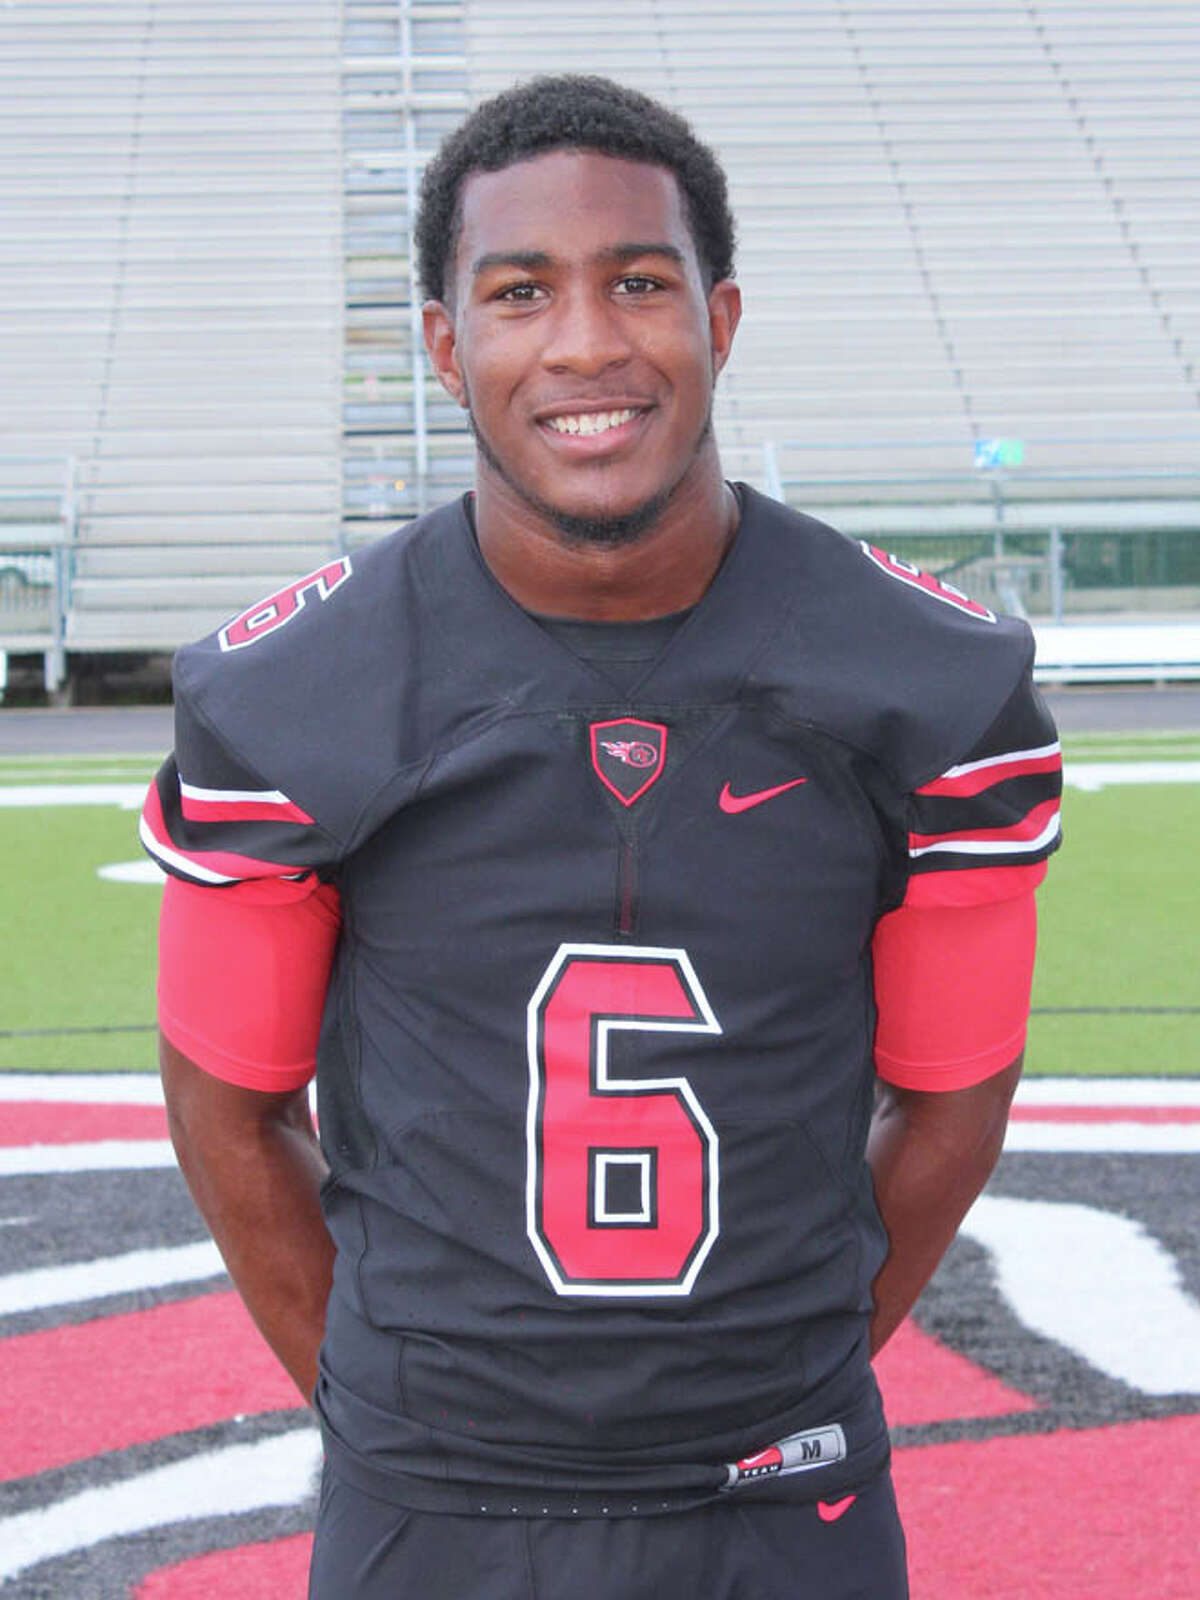 Kameron Martin, Port Arthur Memorial Position: RB Height 5-10 Weight: 175 pounds Grade: Senior Baylor commit whose blazing speed and work ethic makes him one of the most dangerous backs in the area. Martin finished his junior season with 17 rushing touchdowns.